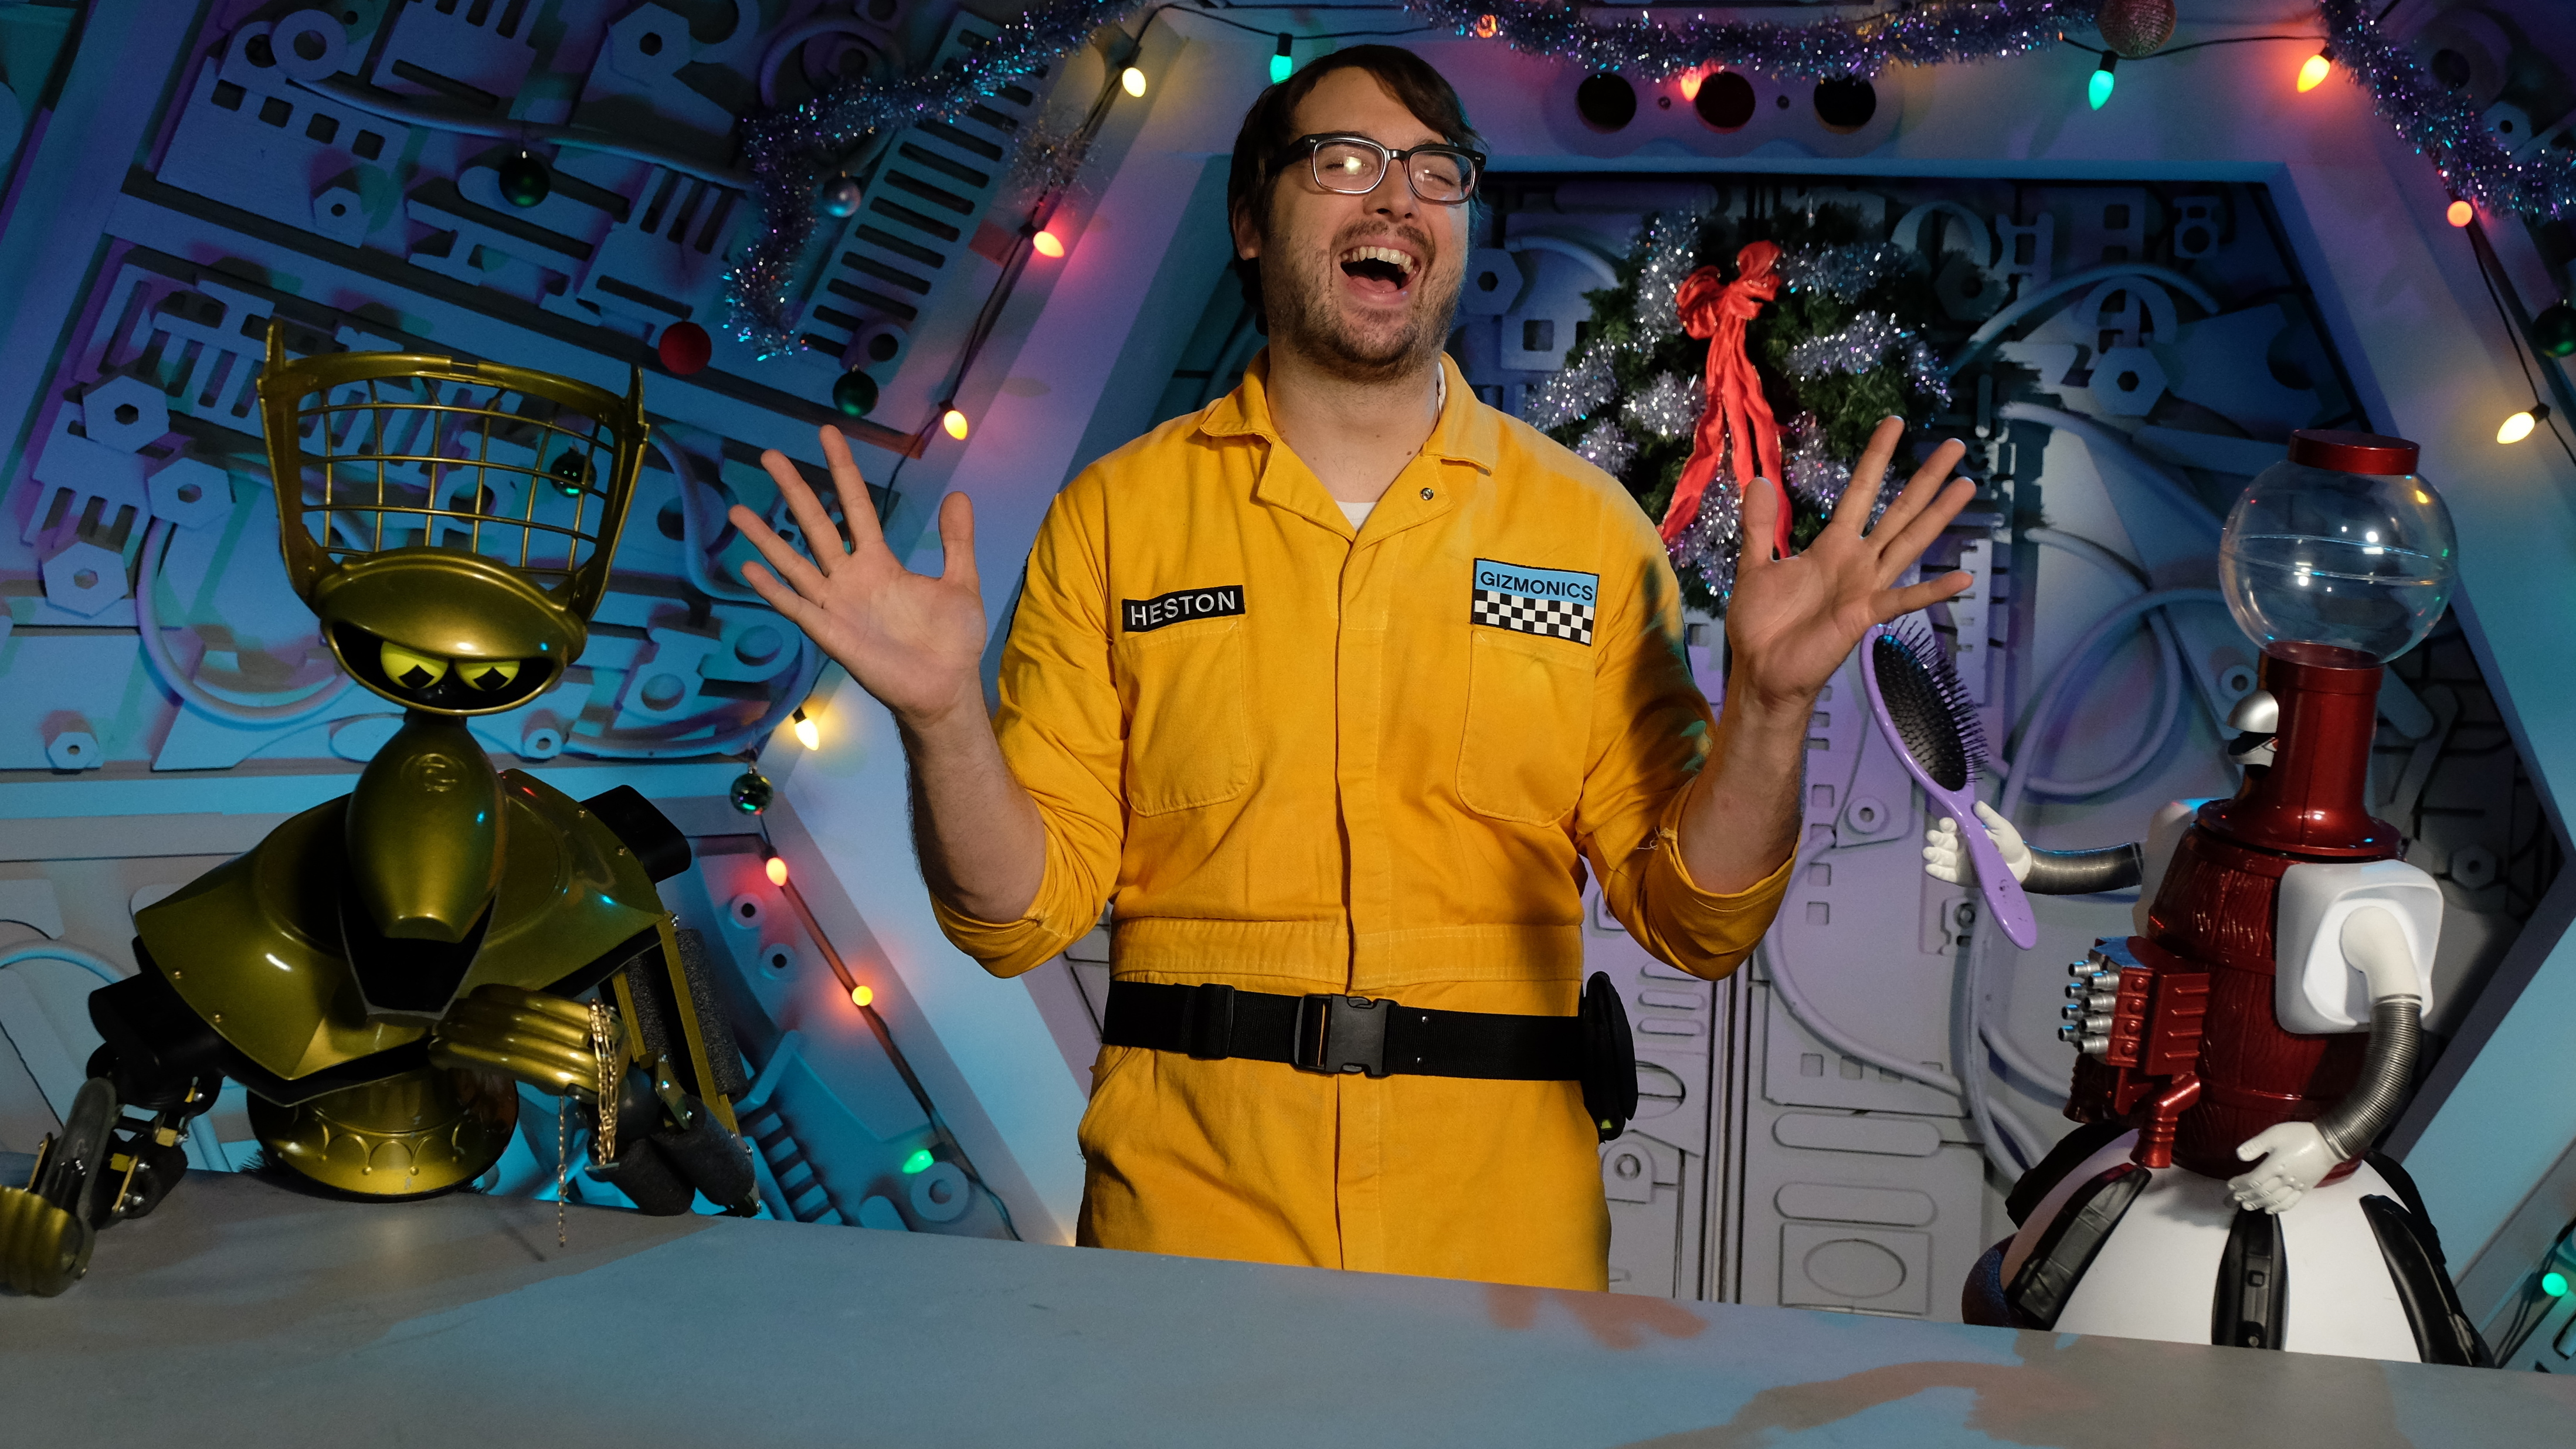 New 'Mystery Science Theater' Coming To Netflix In The Not-Too-Distant Future